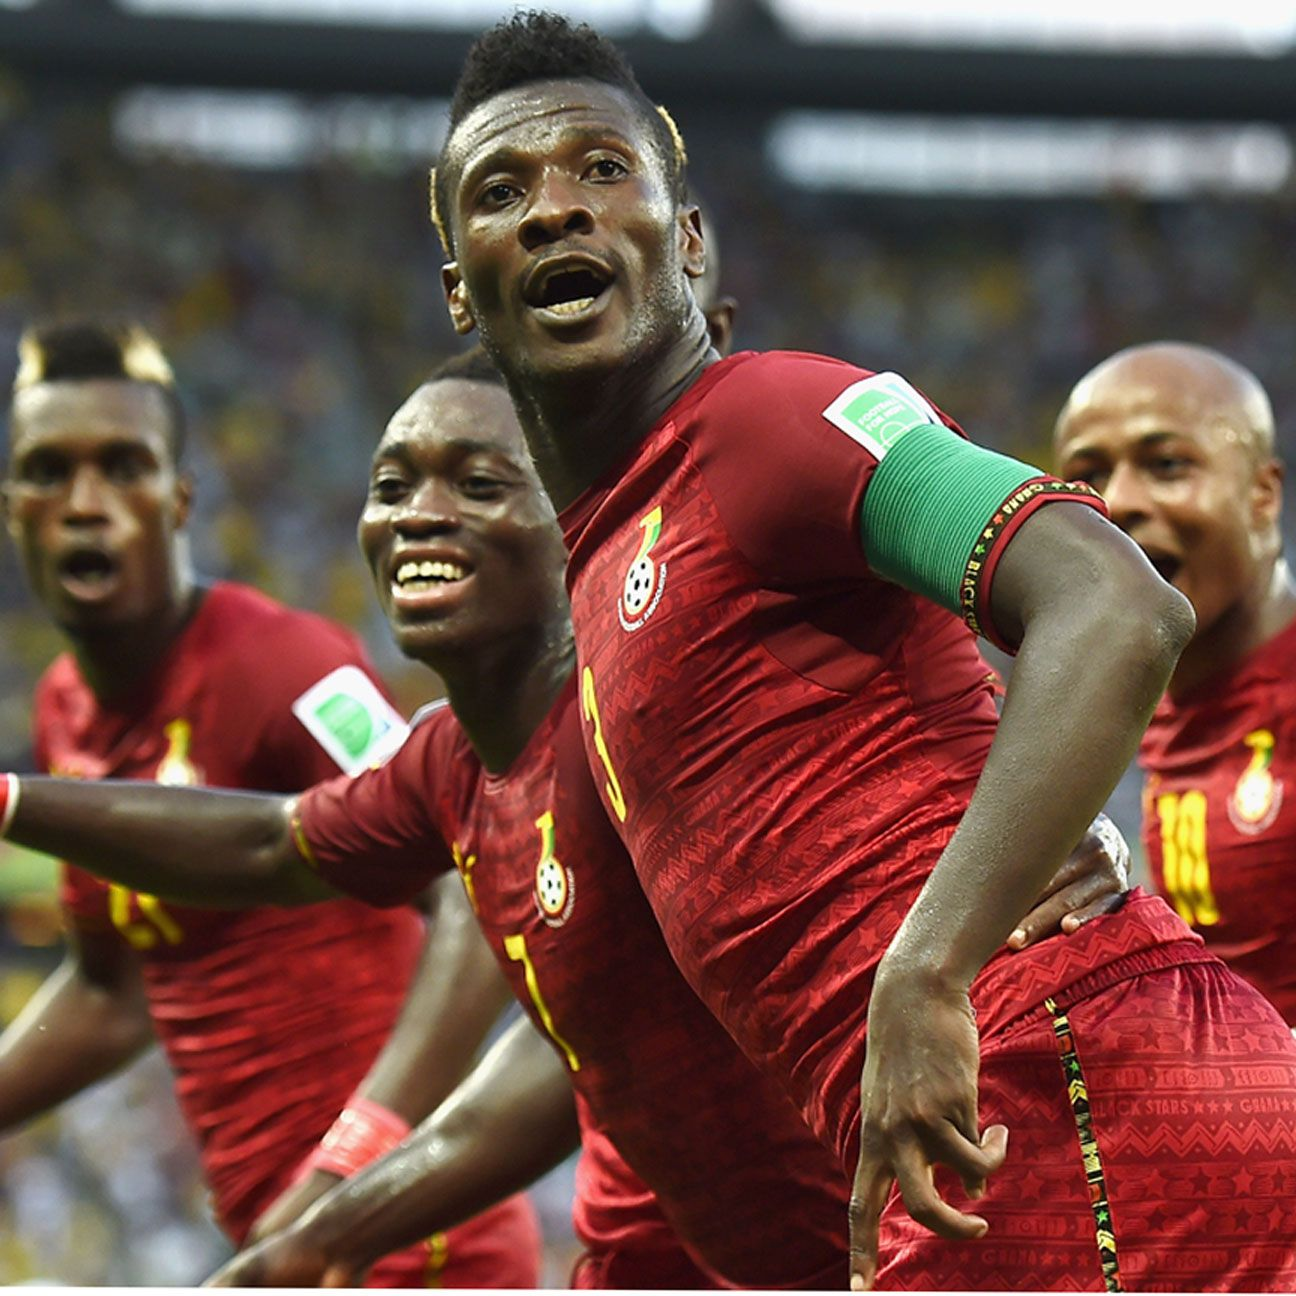 Asamoah Gyan scored in Ghana's 2-2 draw with Germany at the 2014 World Cup.